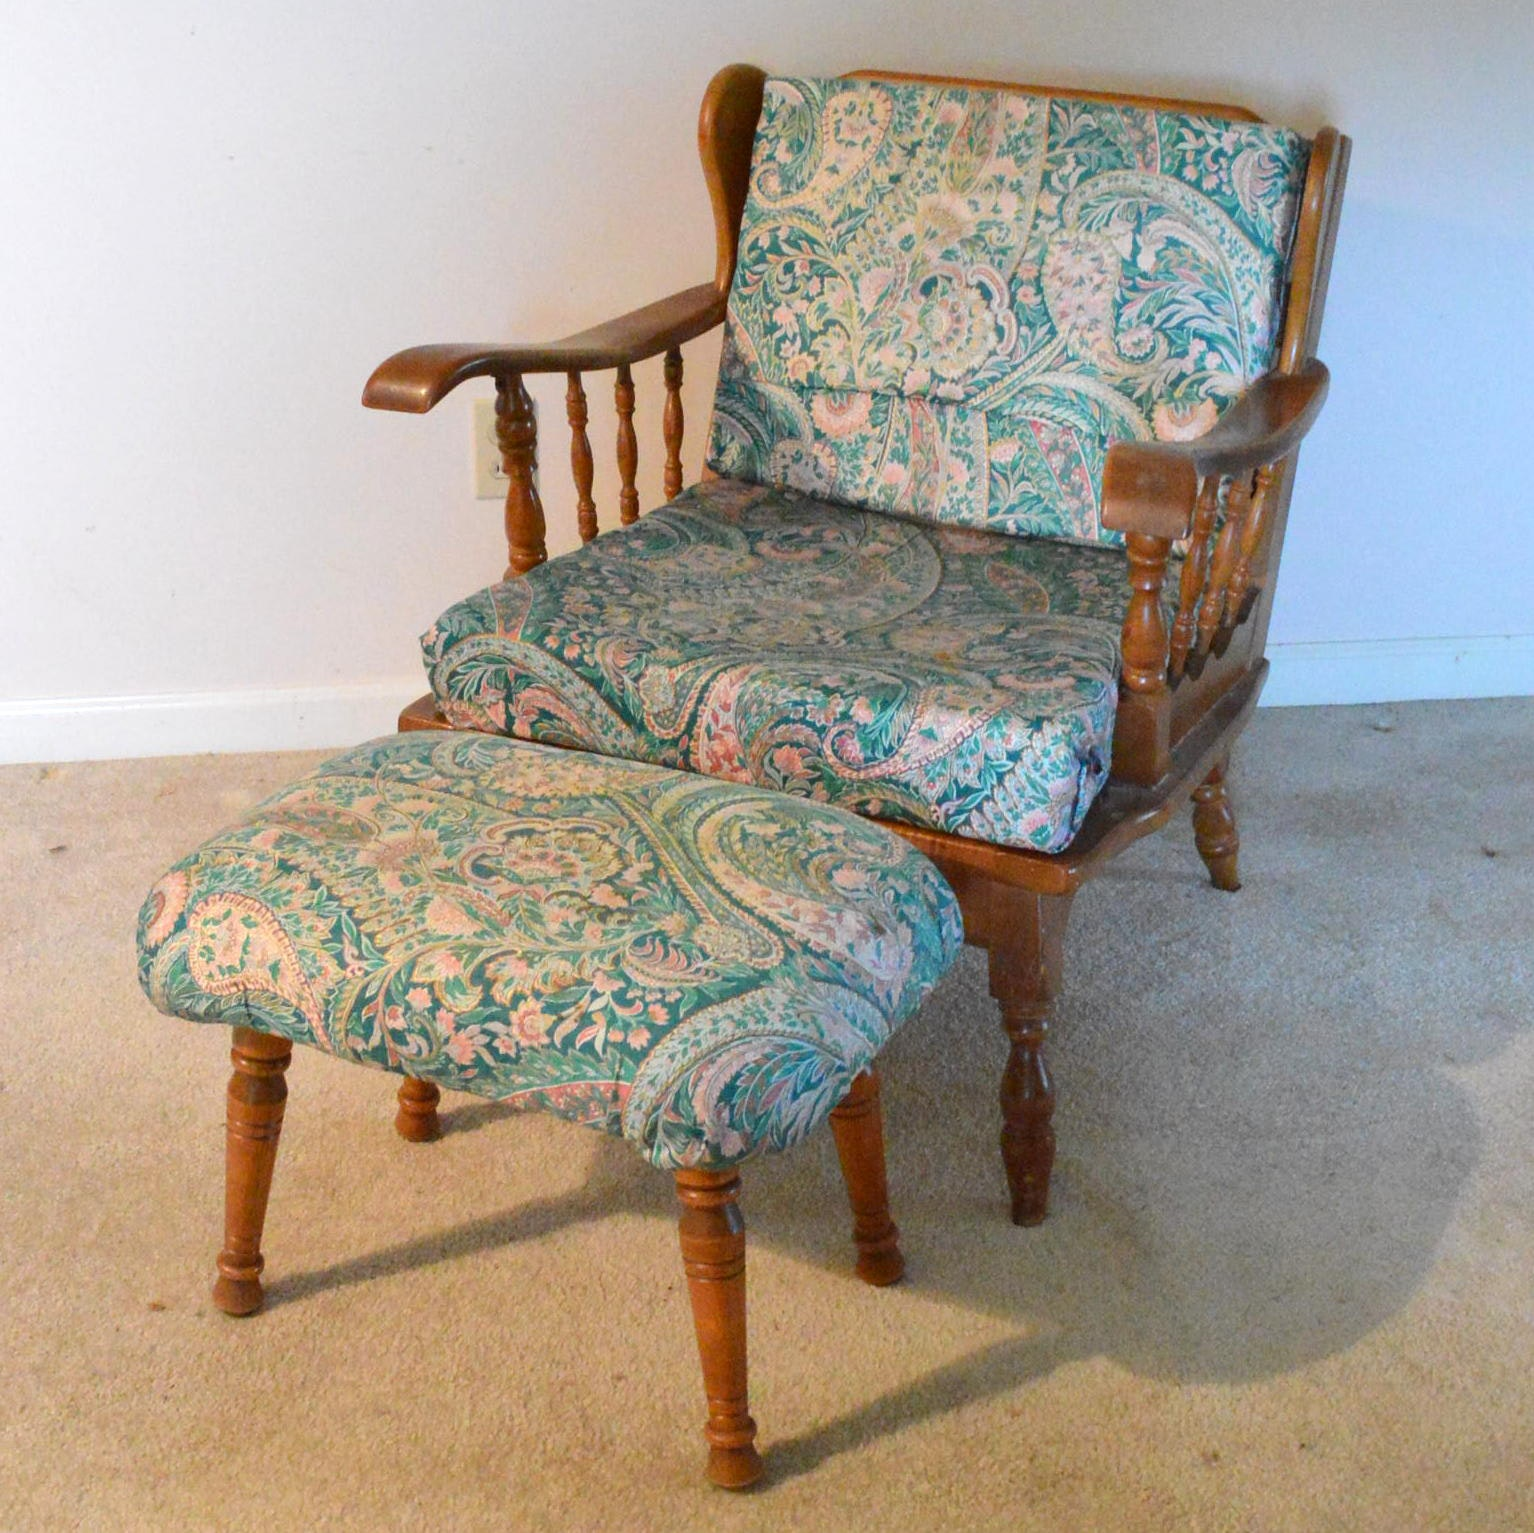 Vintage Armchair and Ottoman With Paisley Upholstery